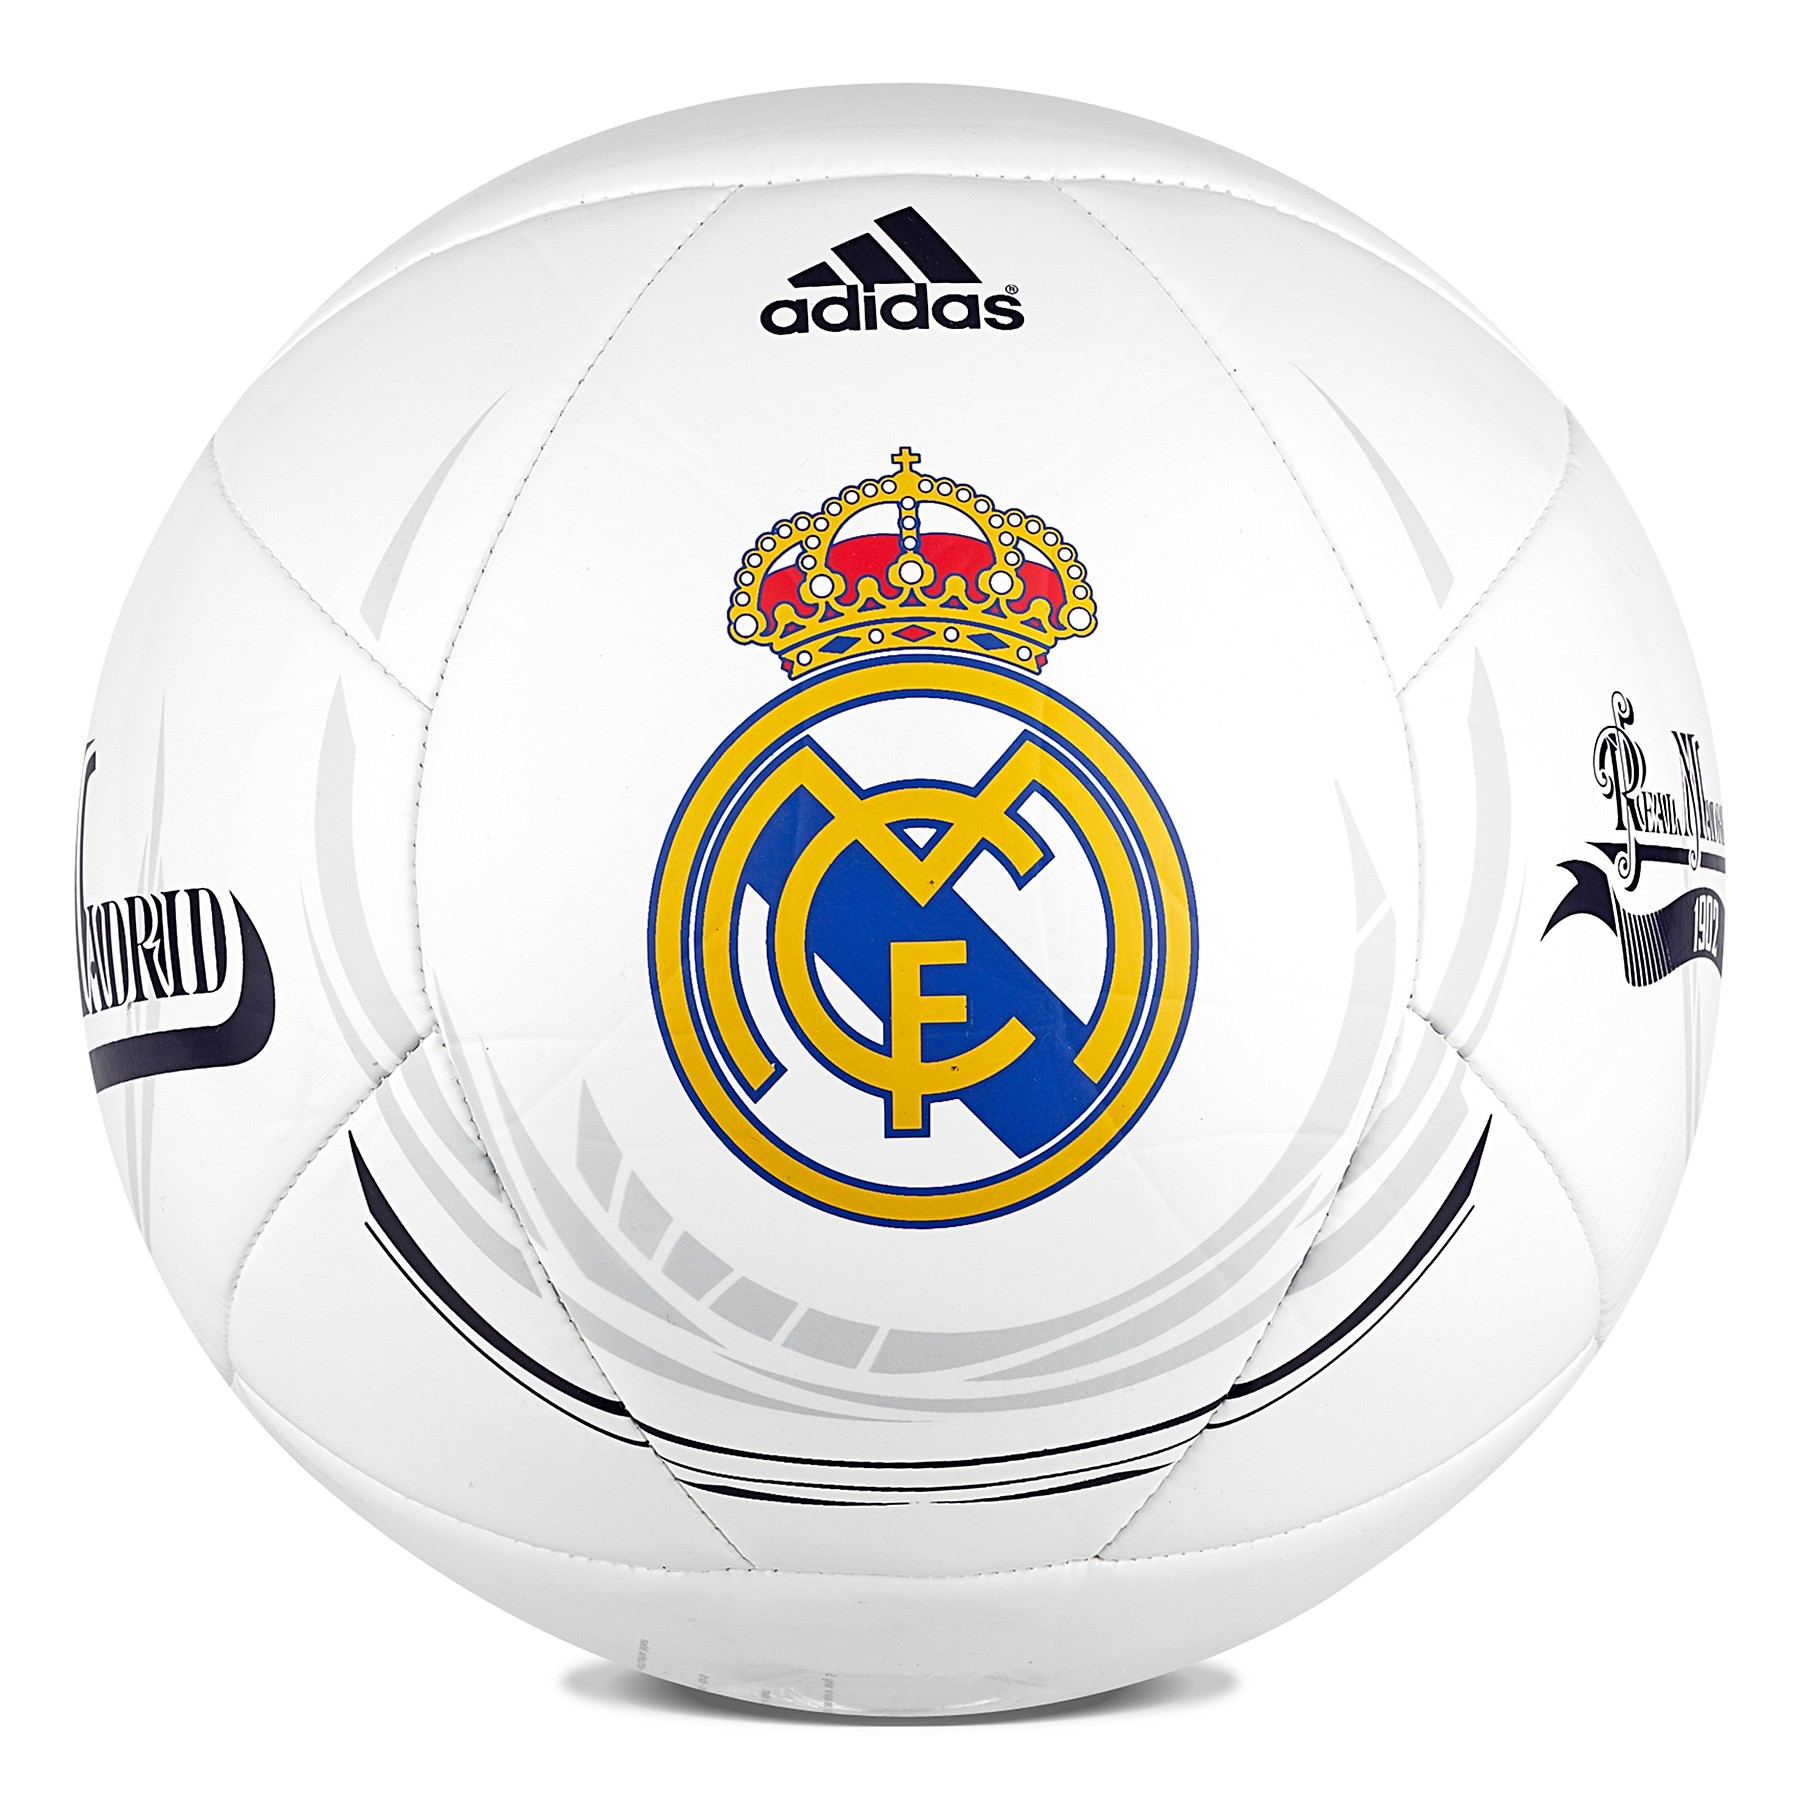 Ball real madrid logo wallpapers wallpaper download voltagebd Images